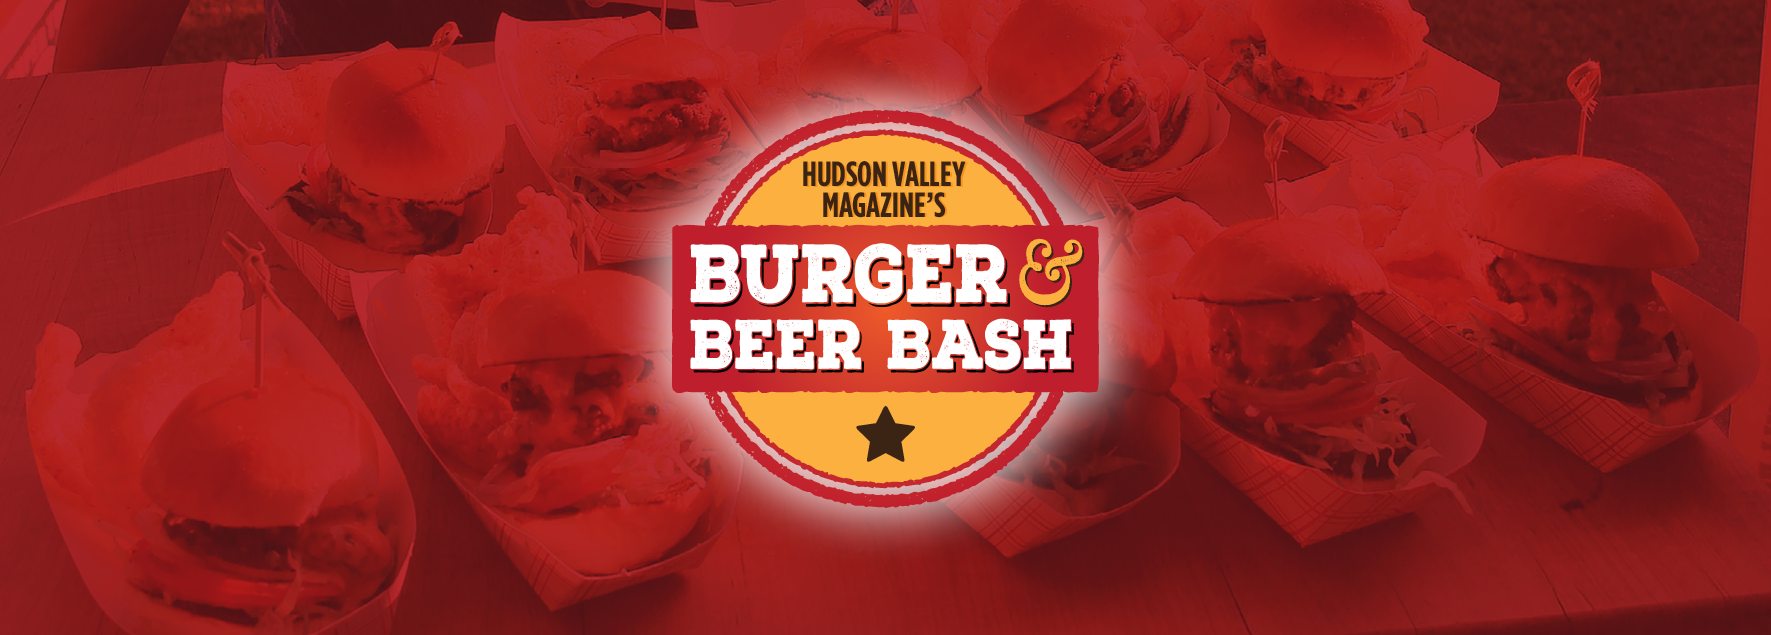 Tickets for 2019 Burger & Beer Bash in Wappingers Falls from ShowClix